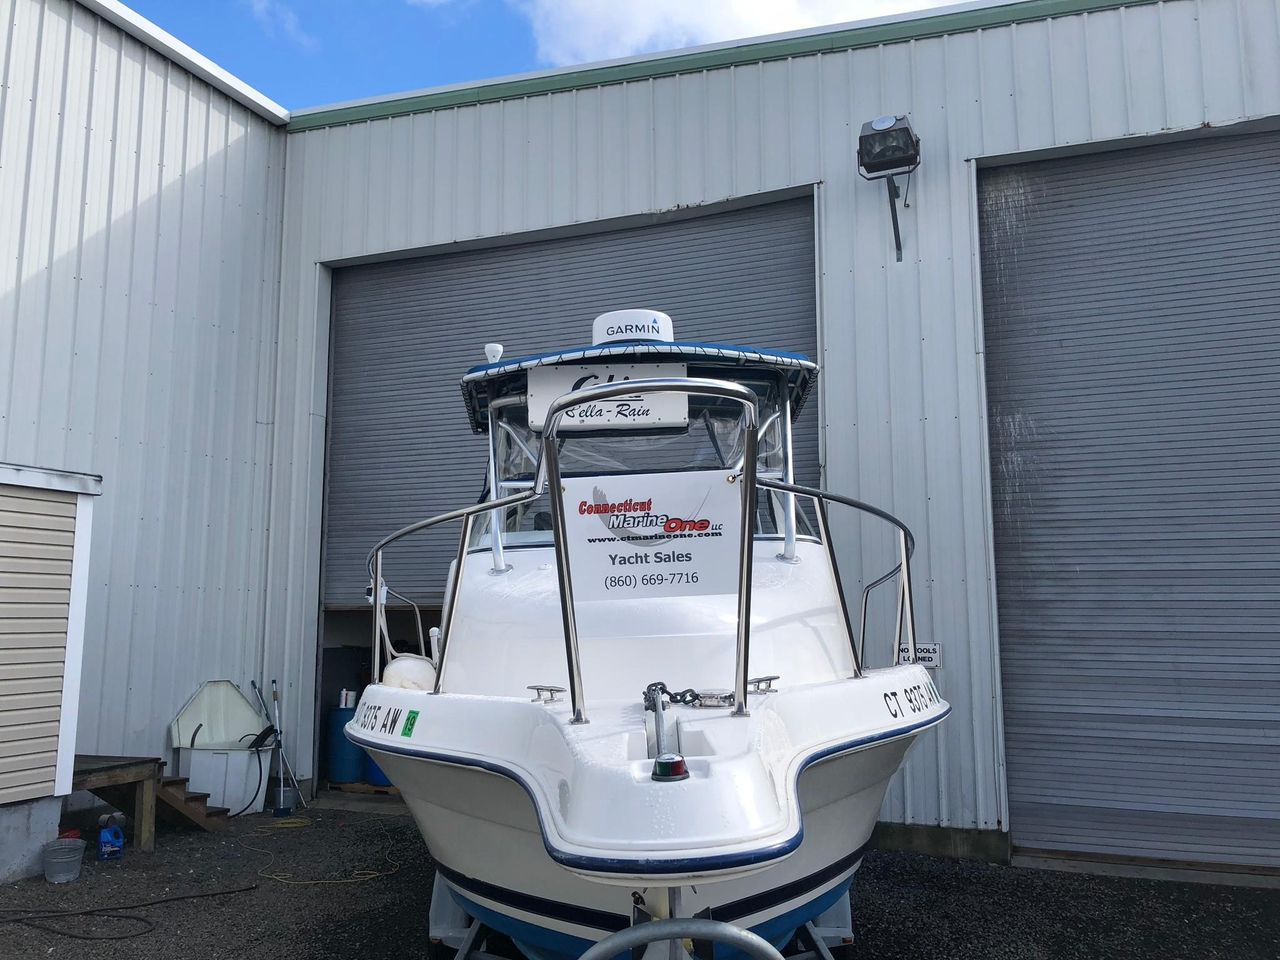 2001 Used Cobia 230 Walk-around Saltwater Fishing Boat For